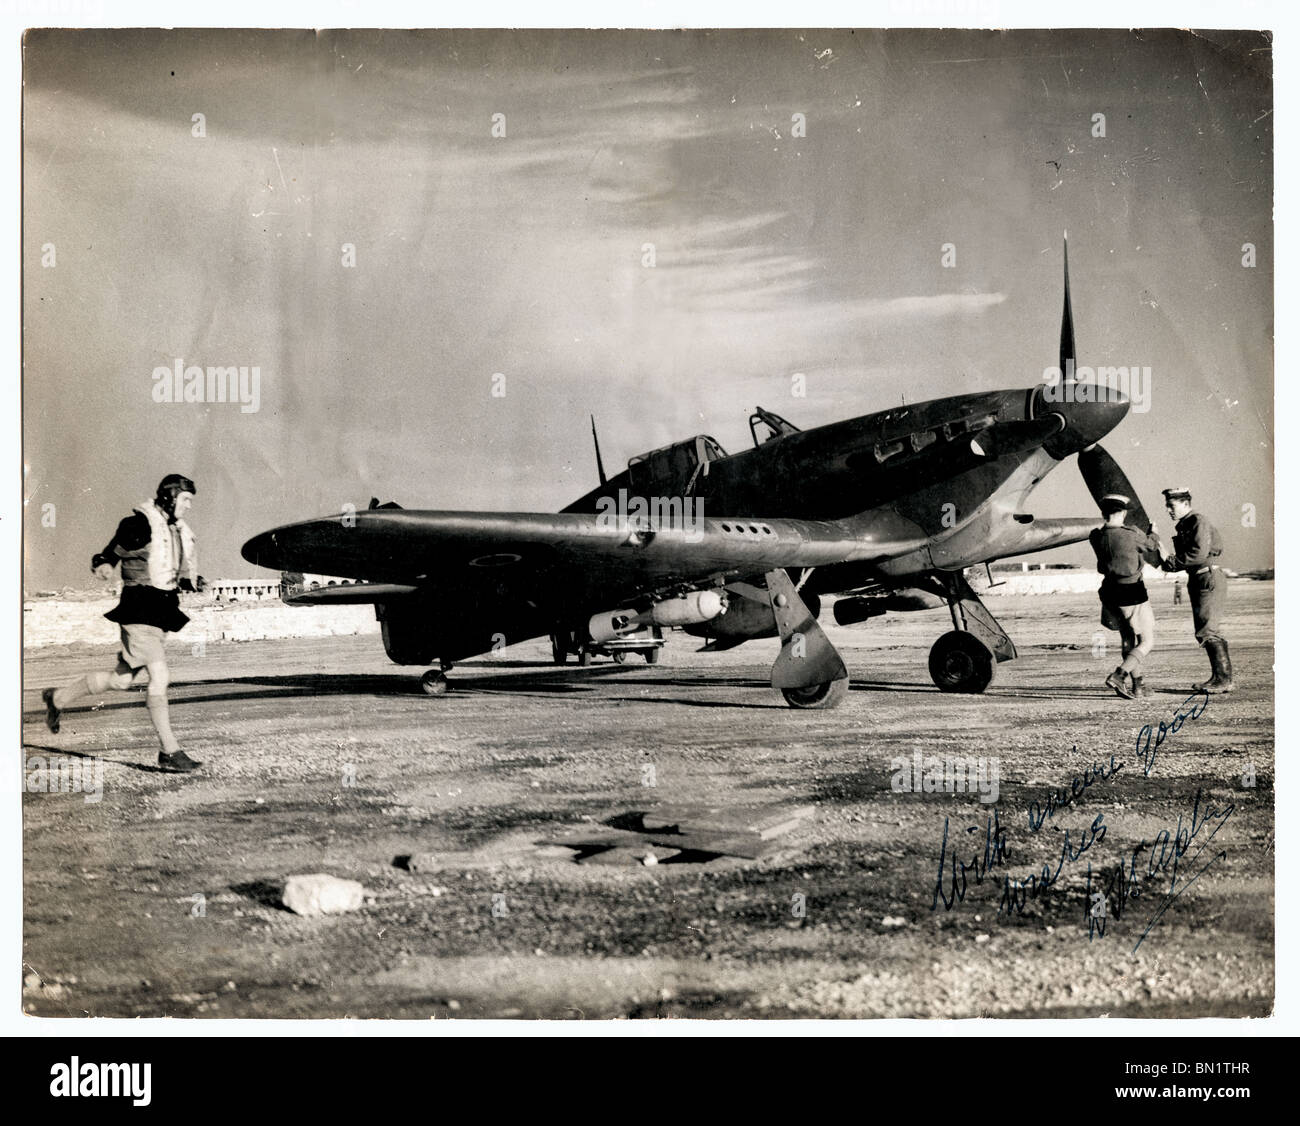 RAF Spitfire Fighter Plane being Prepared to Fly 1940 - Stock Image